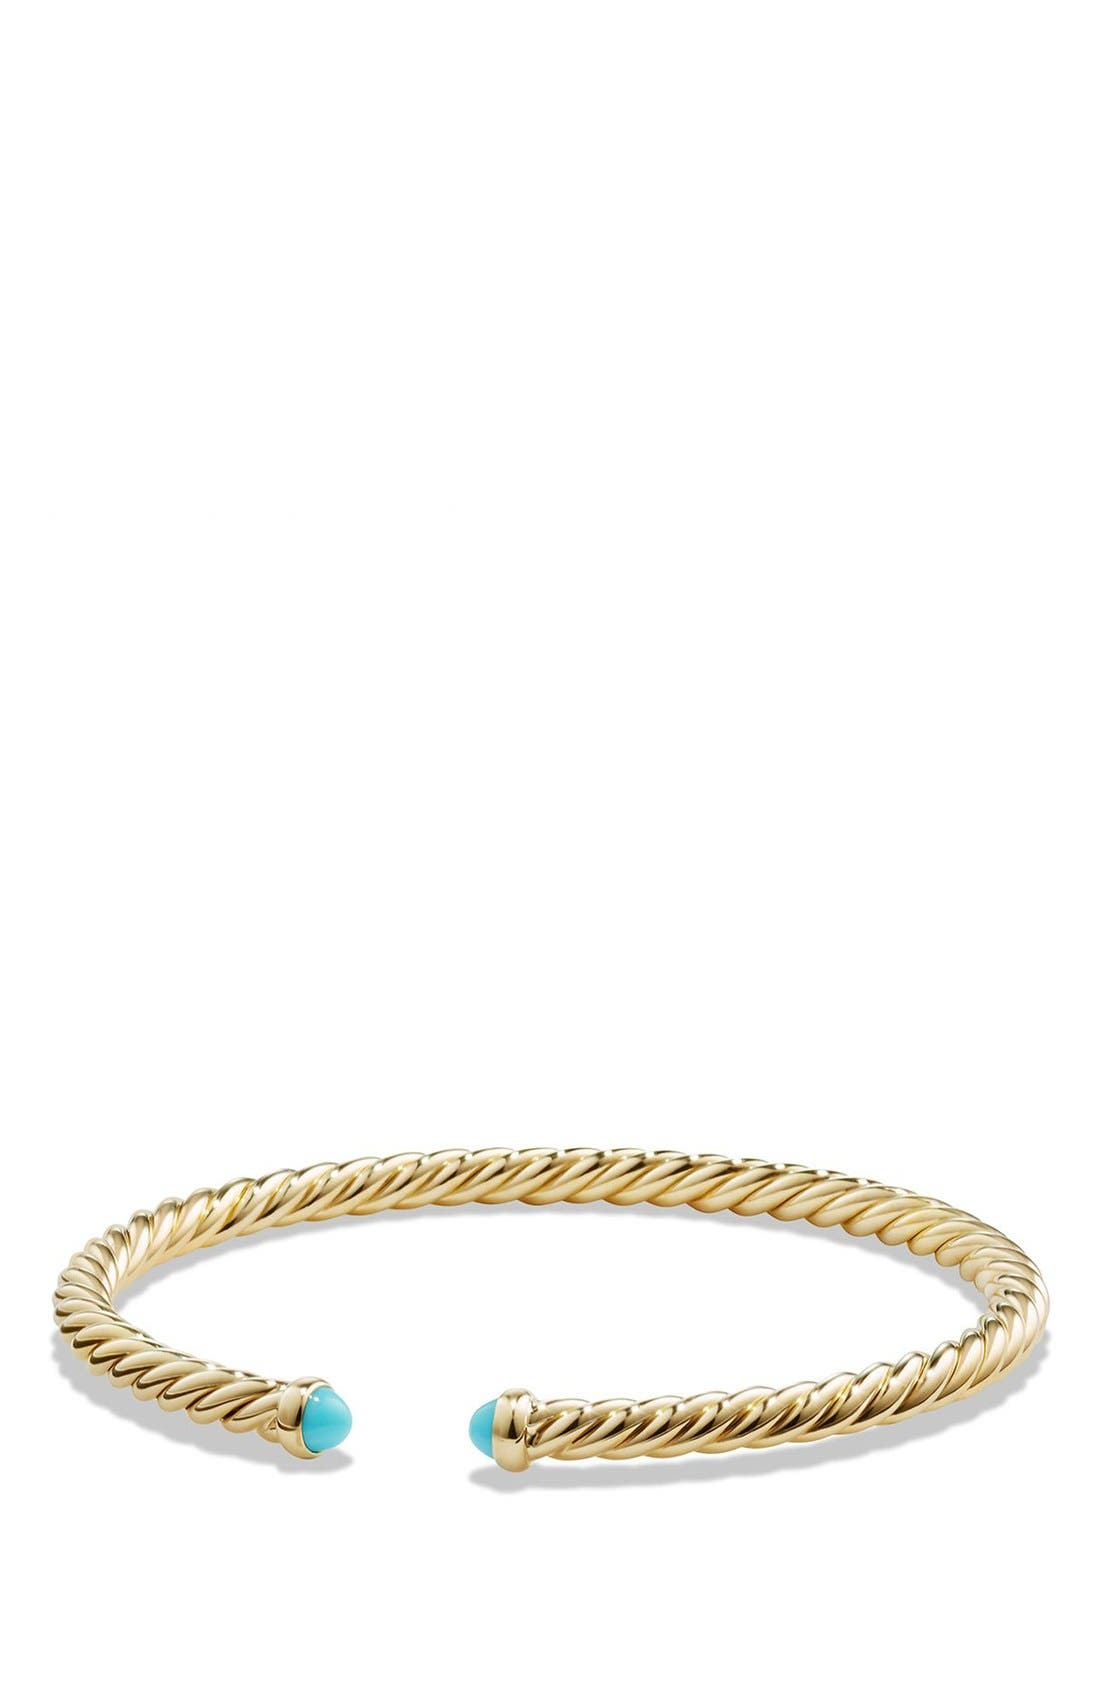 DAVID YURMAN, Cable Spira Bracelet with Semiprecious Stones in 18K Gold, Main thumbnail 1, color, TURQUOISE